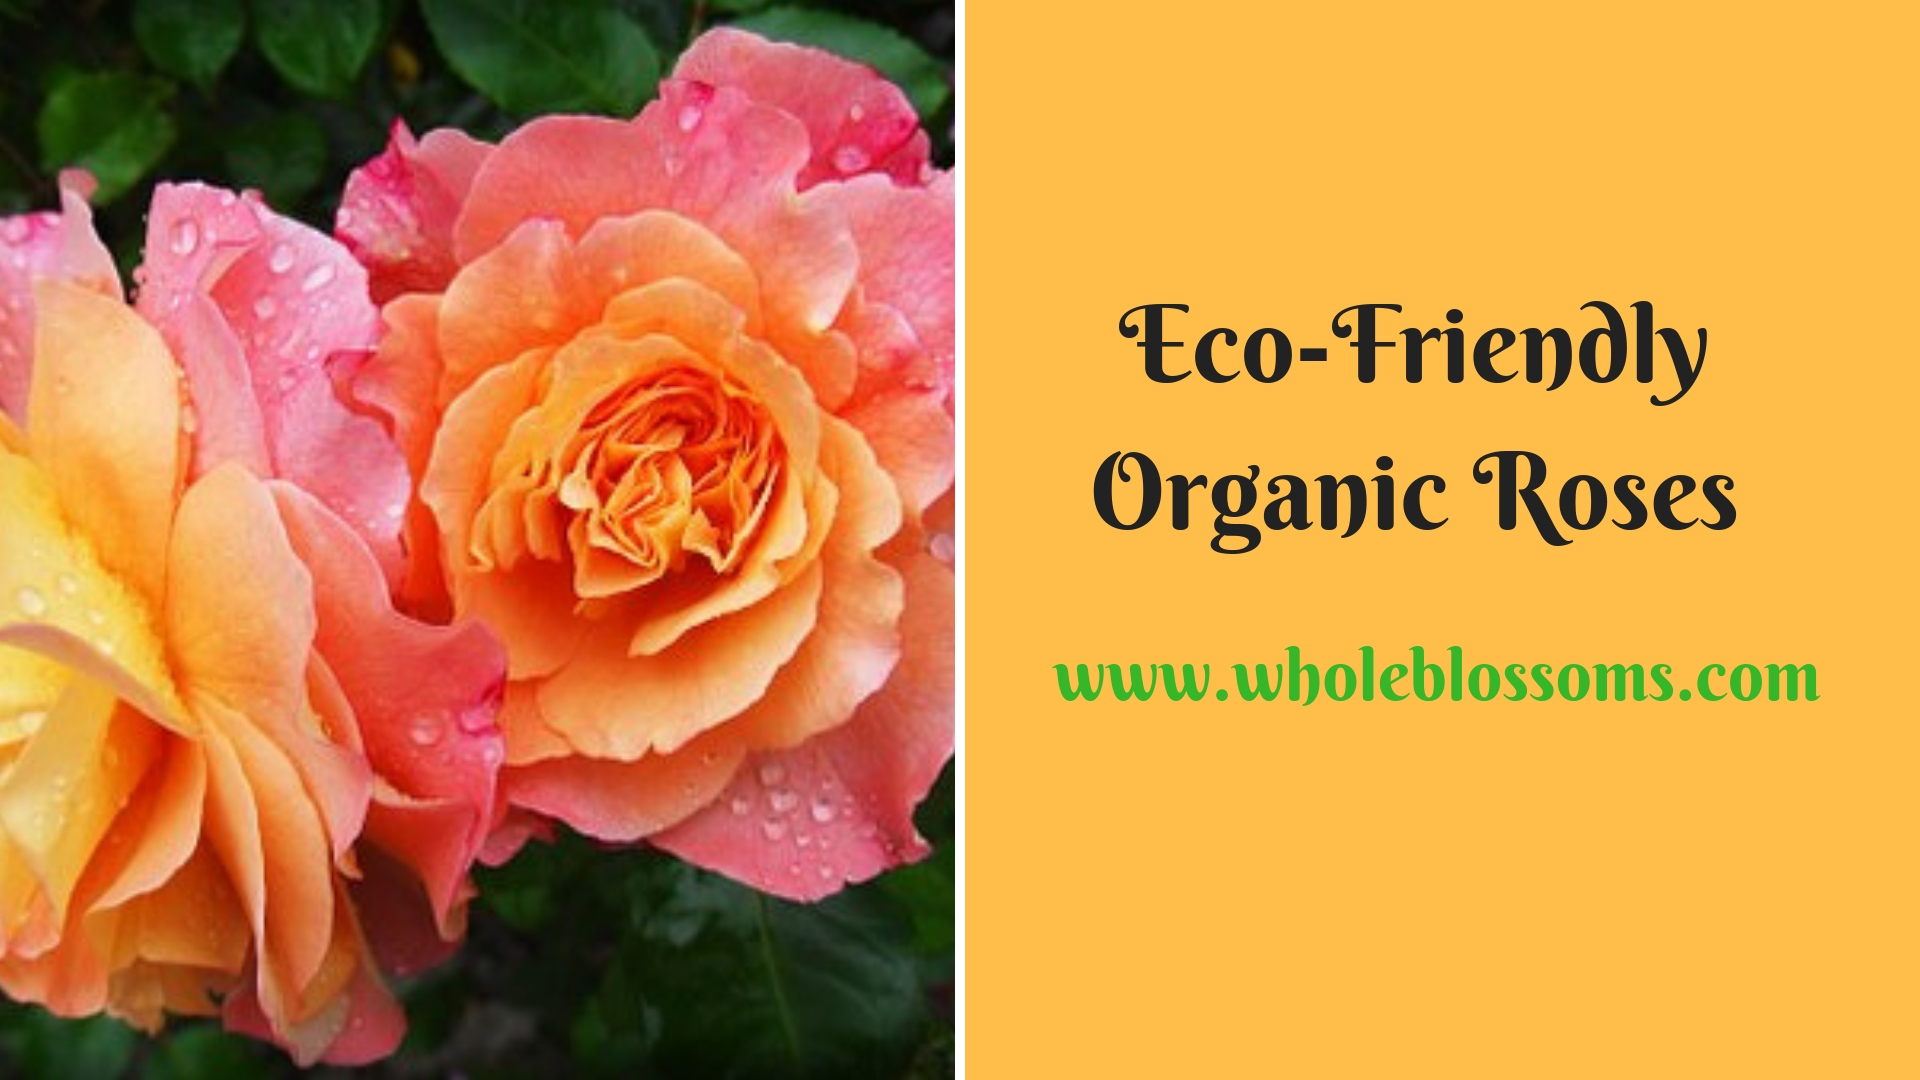 Where to Buy Organic Roses in Bulk